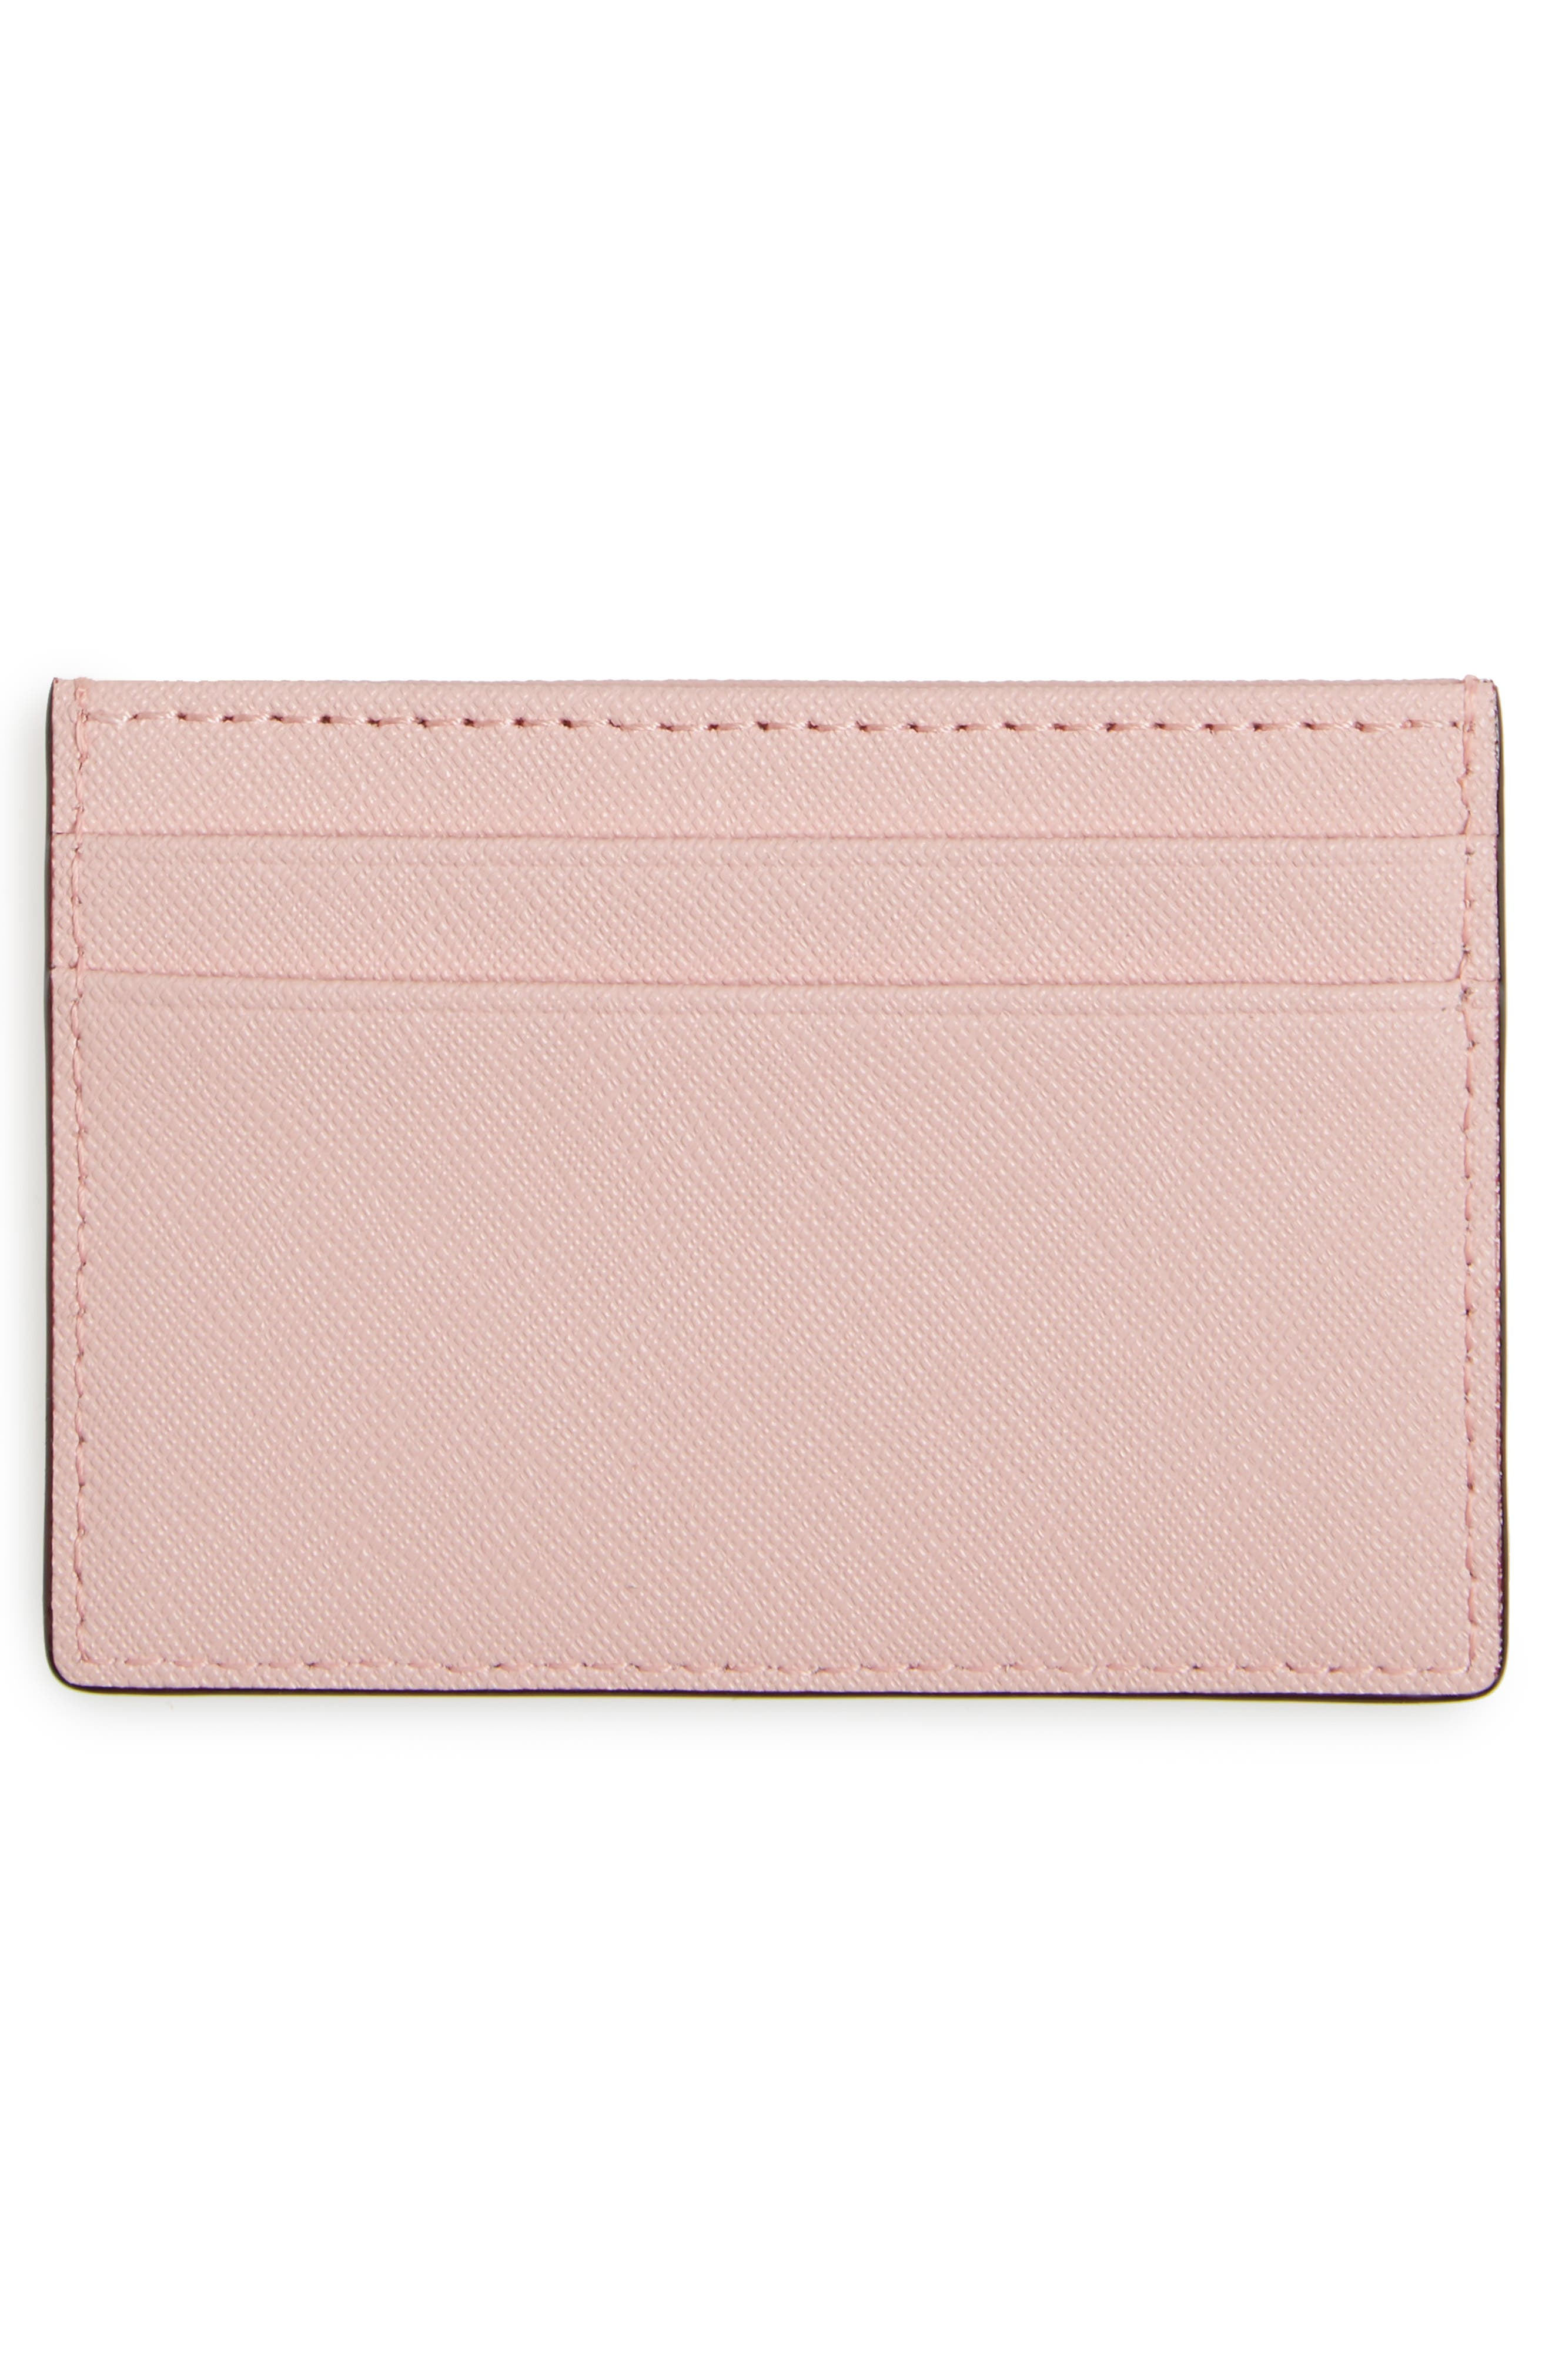 cameron street card holder,                             Alternate thumbnail 22, color,